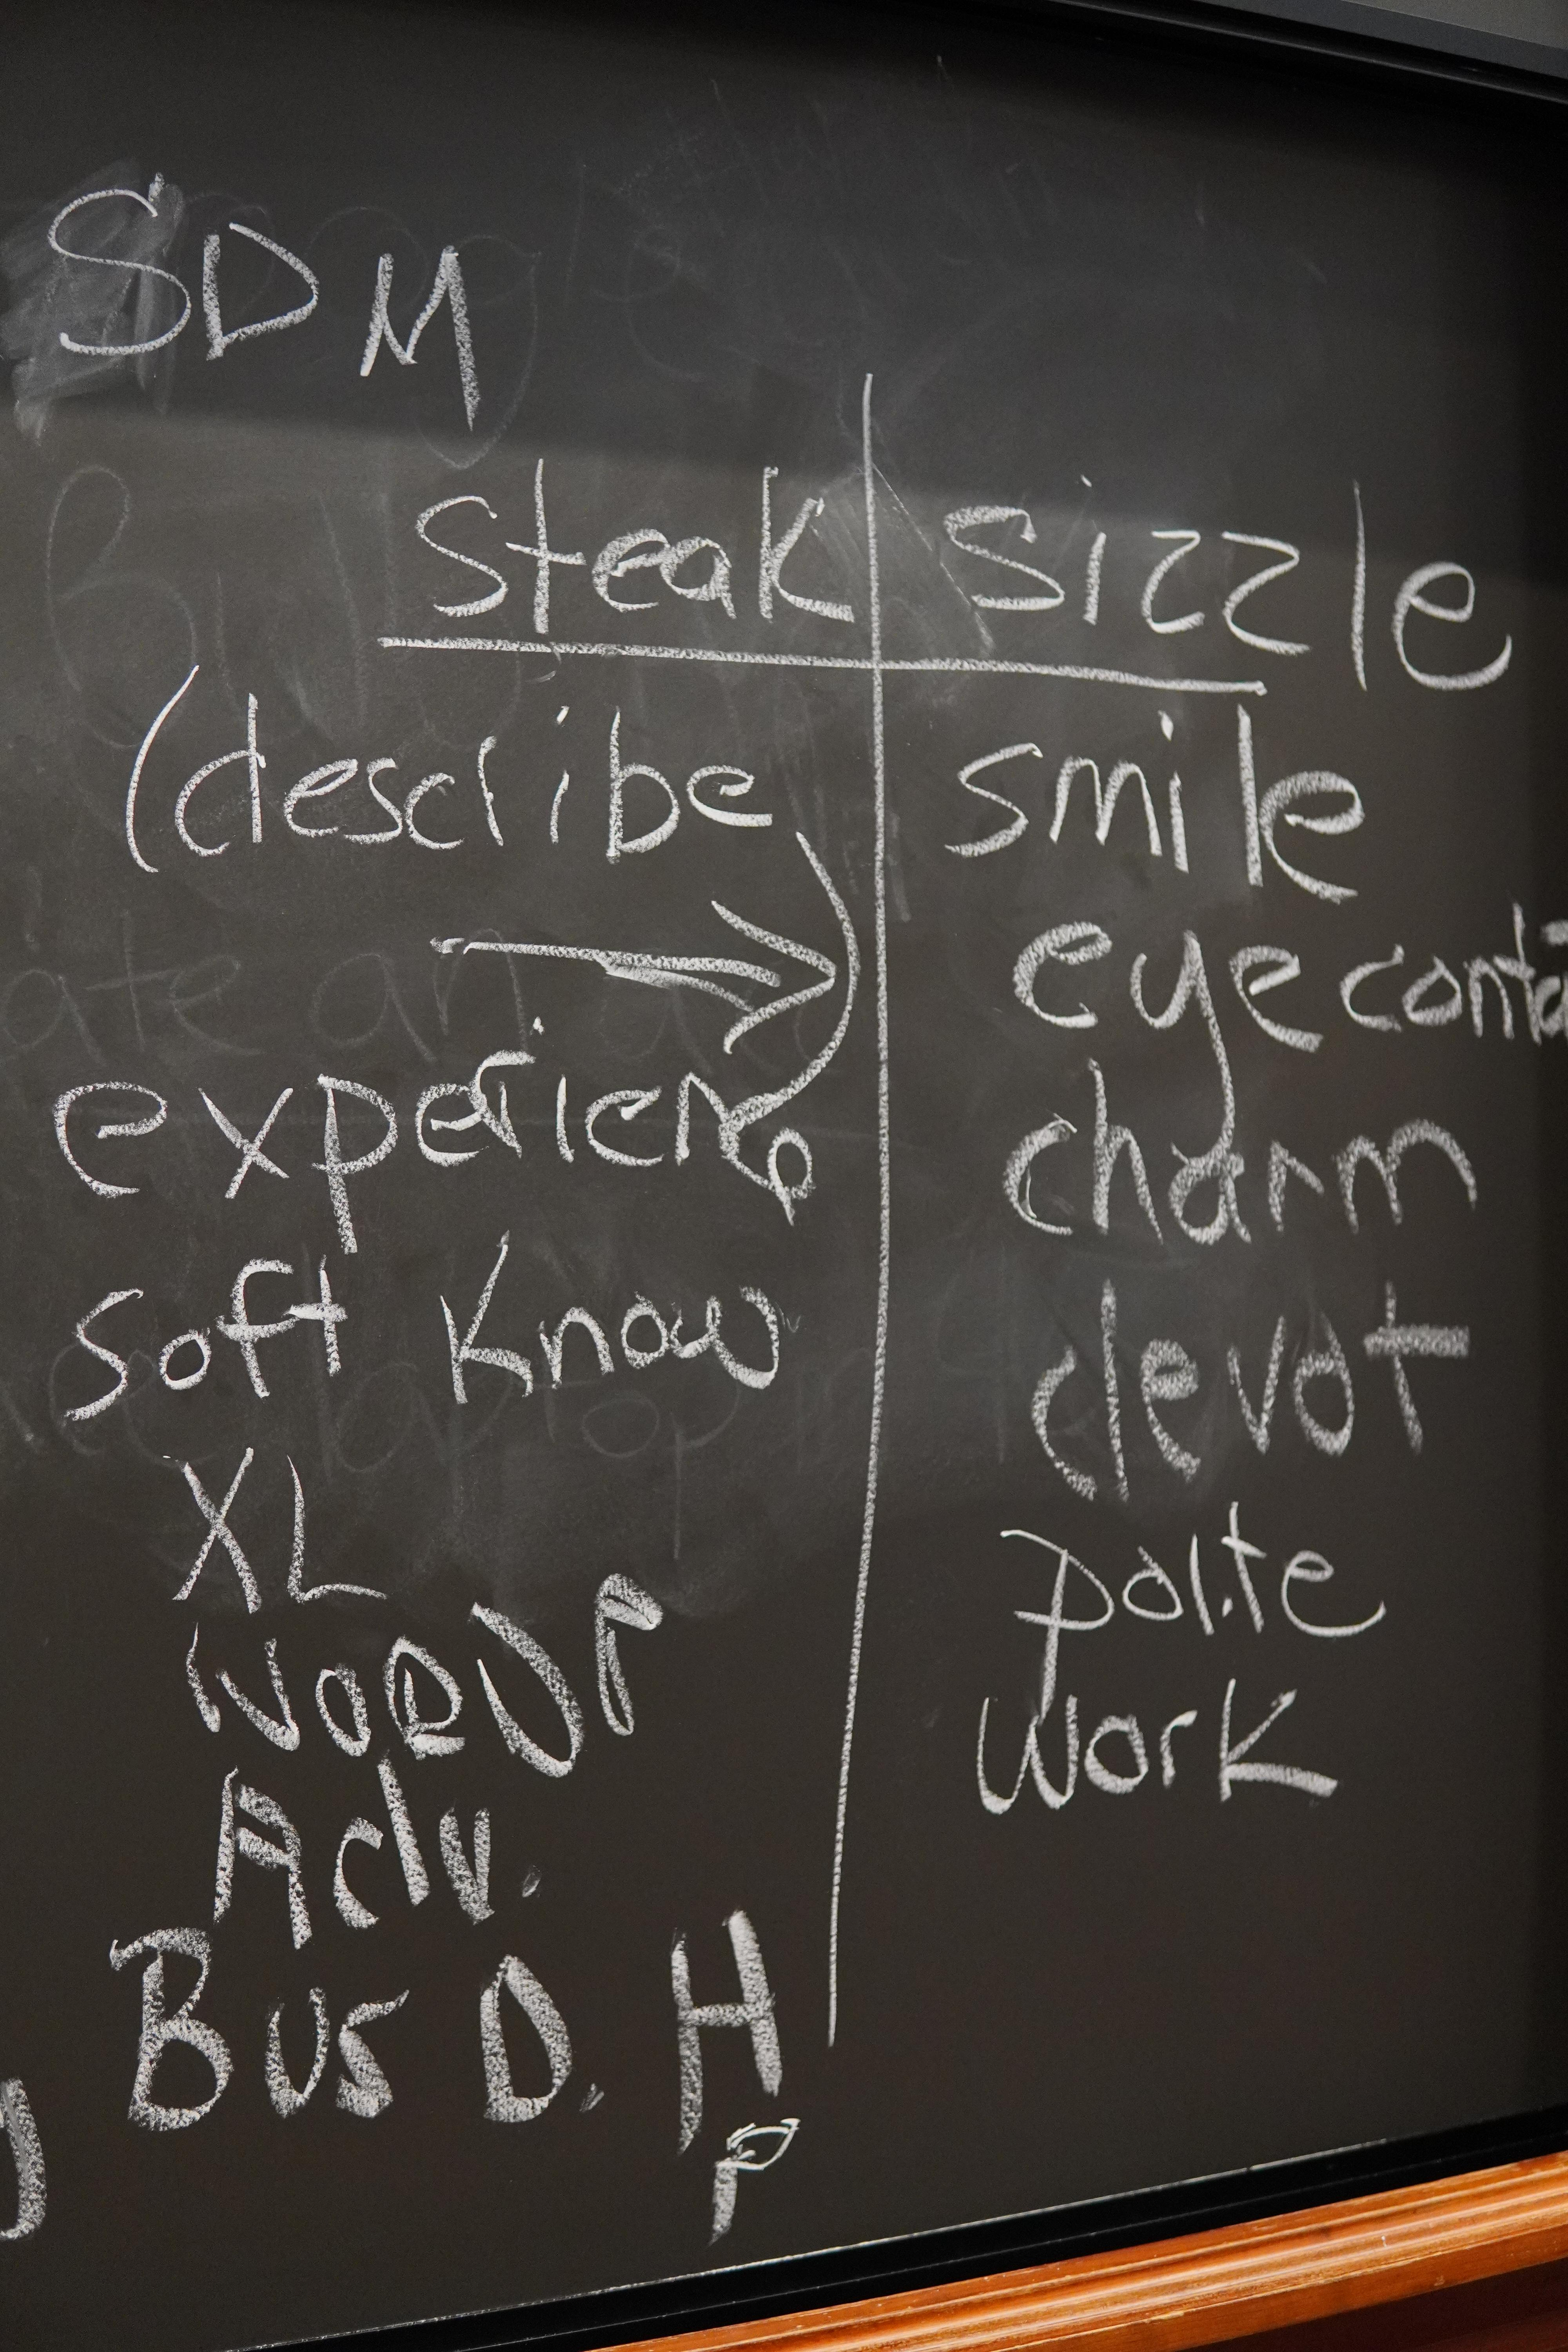 A blackboard with a t-chart with Steak and Sizzle as the two headers. Below steak is listed